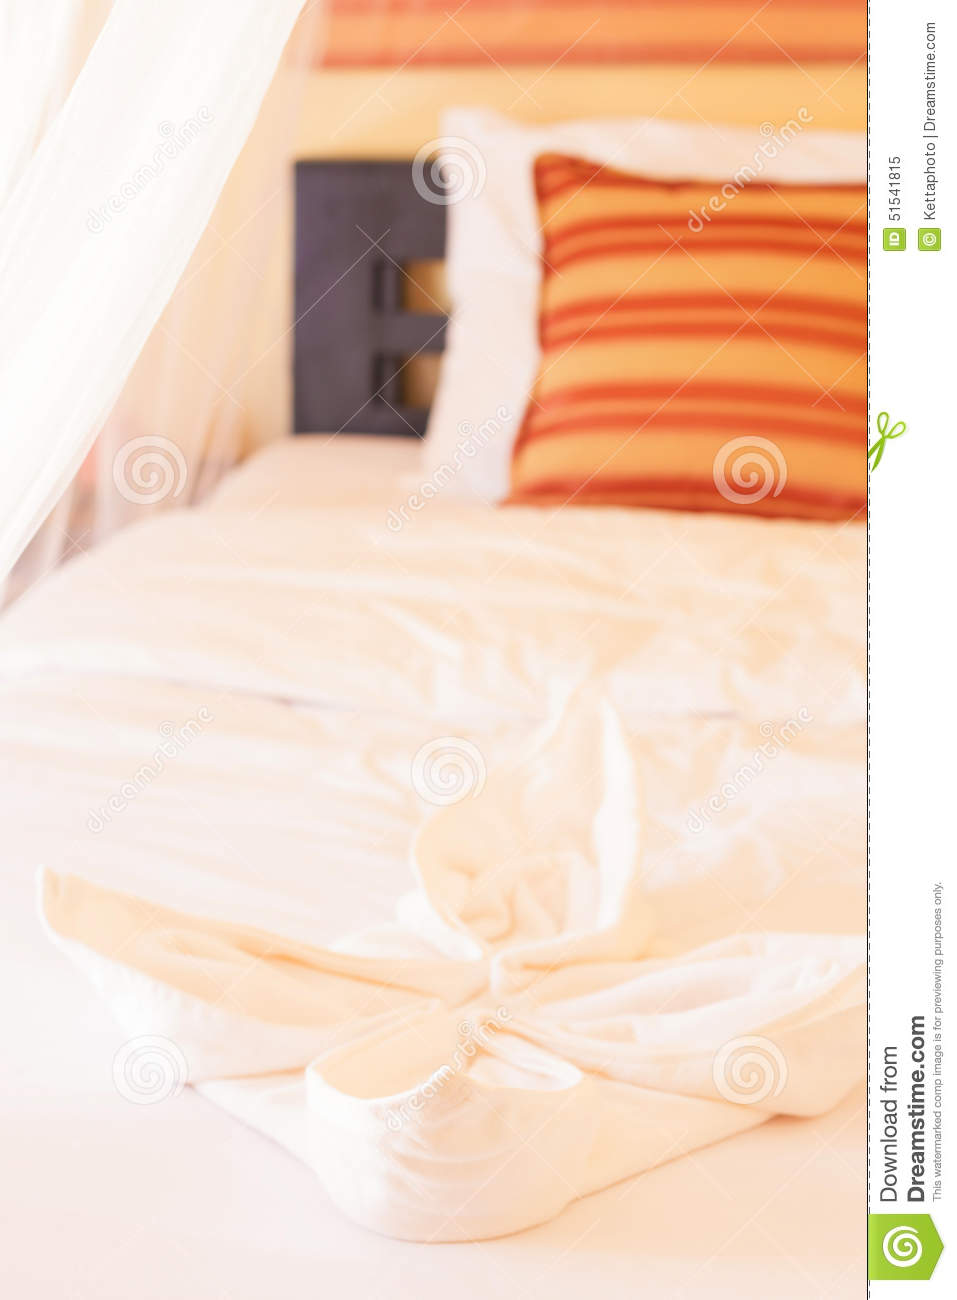 Bed With Mosquito Netting Stock Image. Image Of Pillow